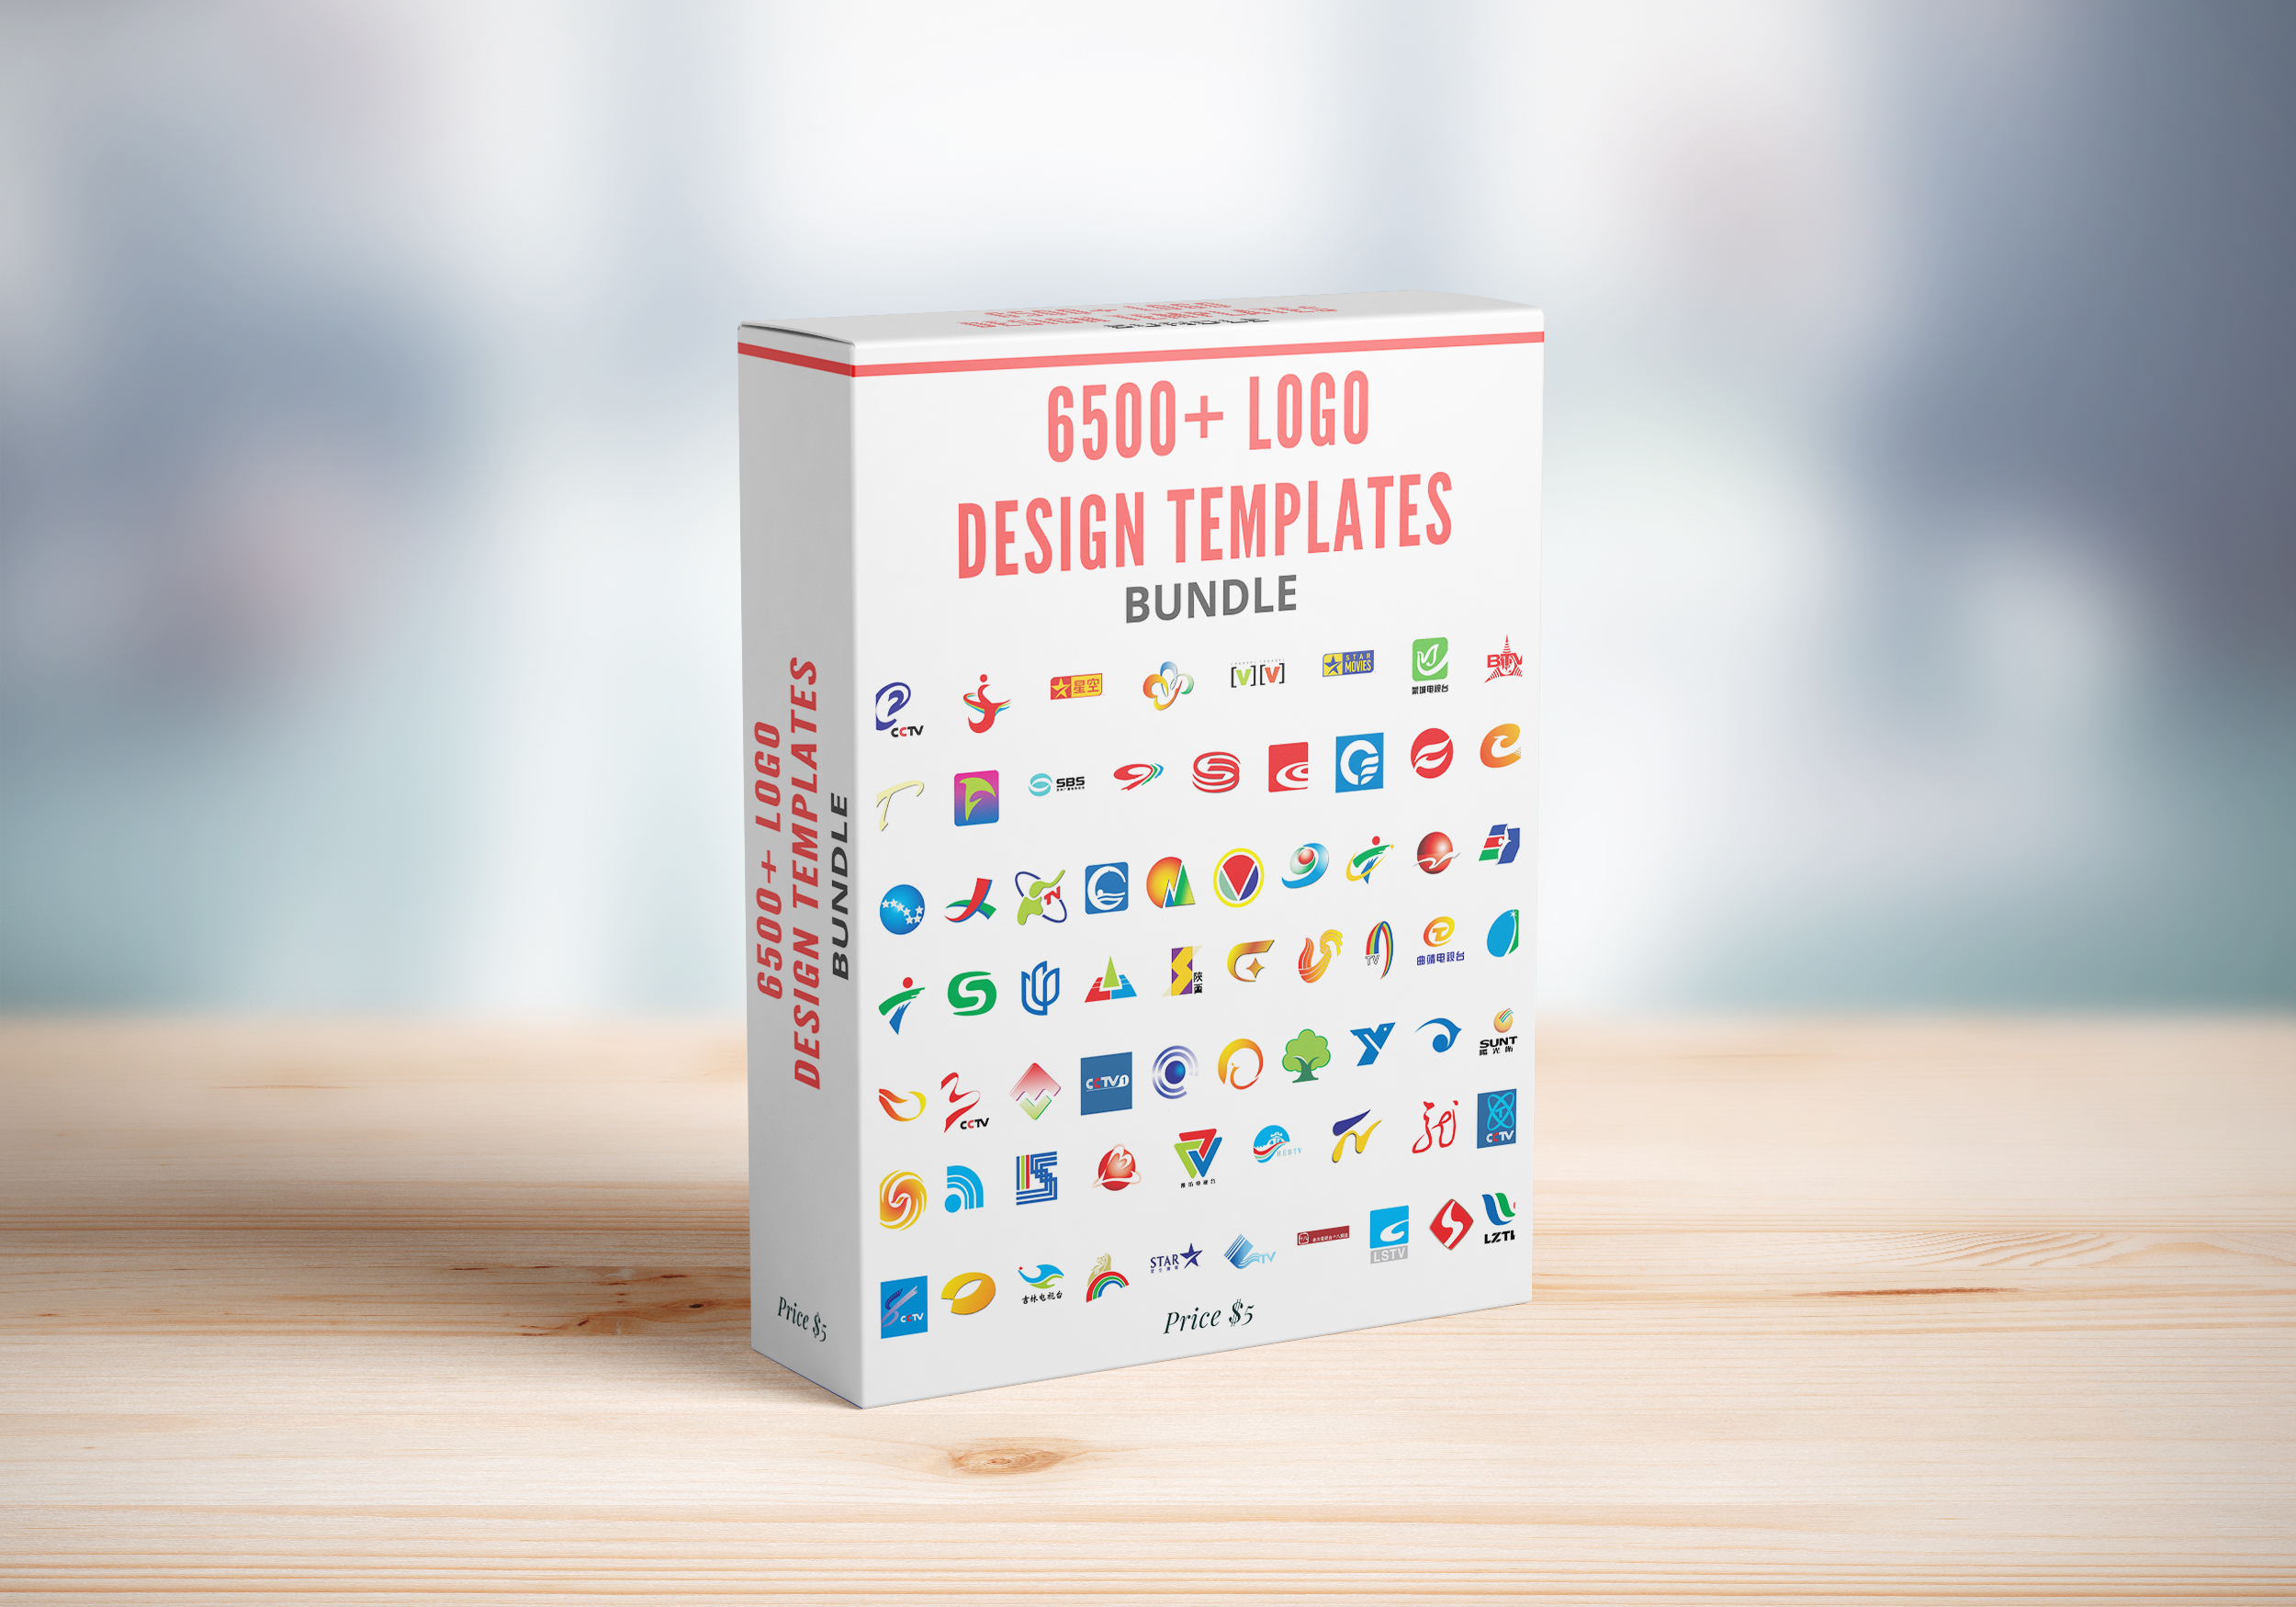 I Will Send You 6500+ Logo Design Templates